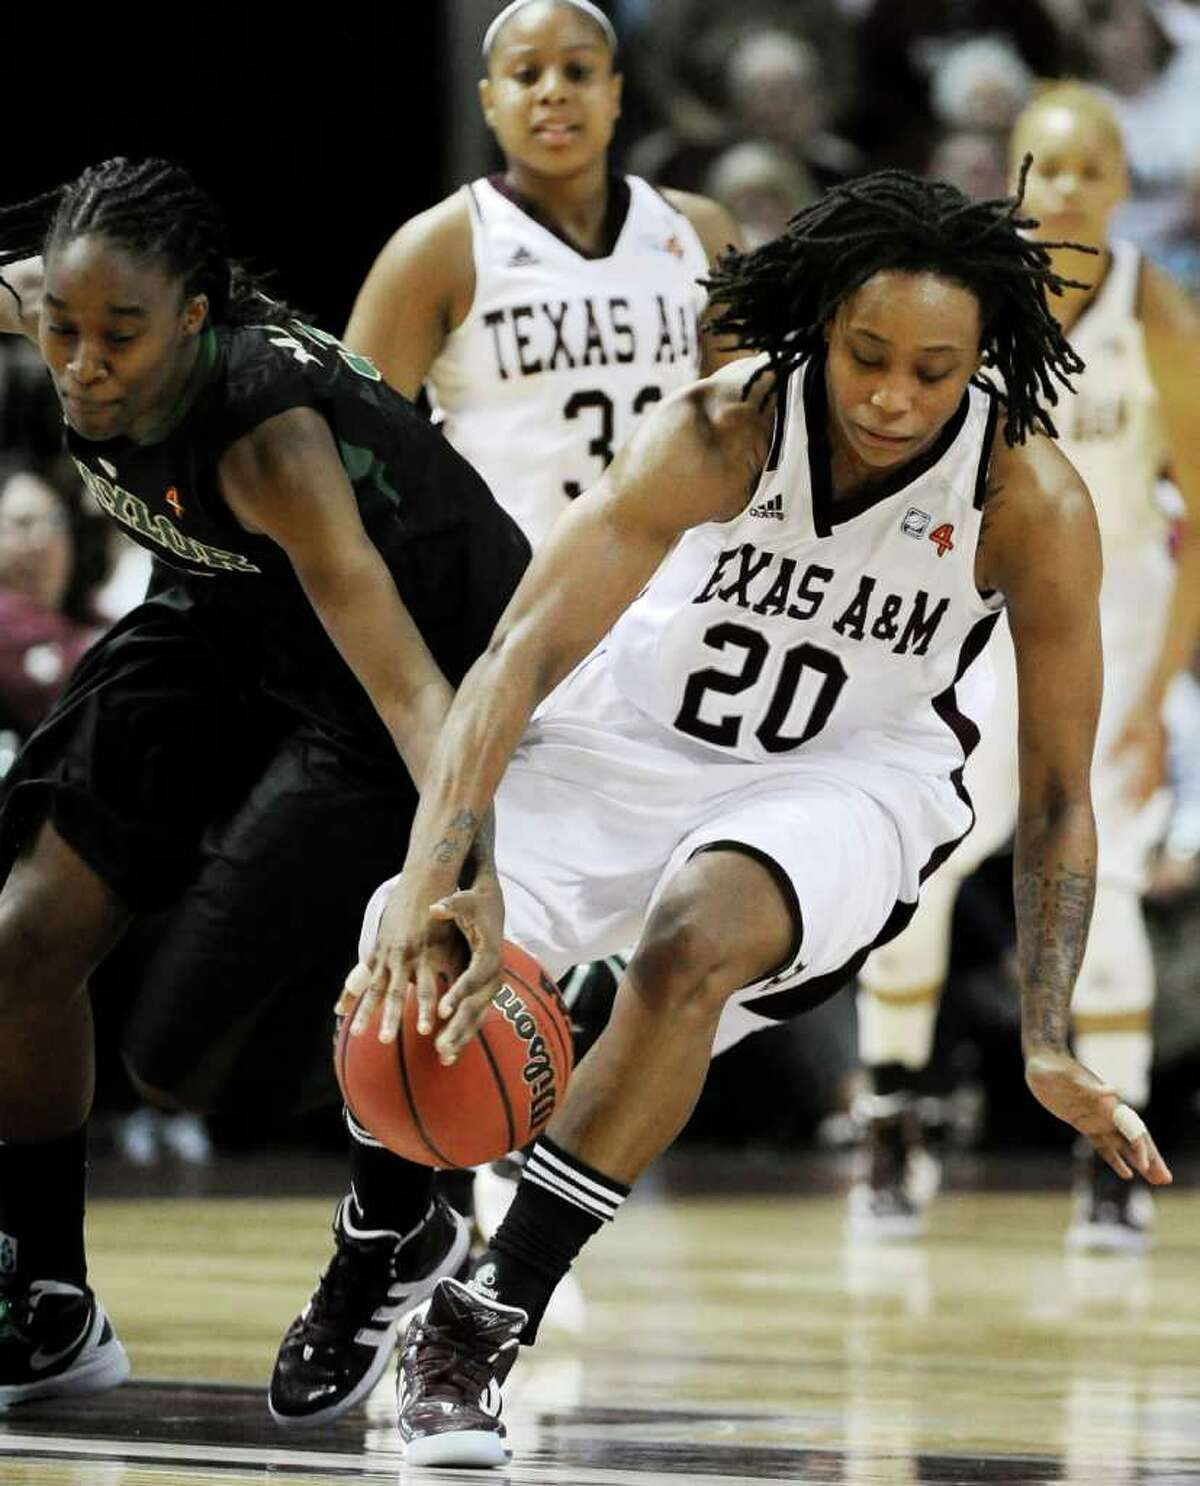 Baylor's Jordan Madden, left, and Texas A&M's Tyra White (20) struggle for possession of the ball in the second half of an NCAA college basketball game Monday, Feb. 27, 2012, in College Station, Texas. Baylor won 69-62.